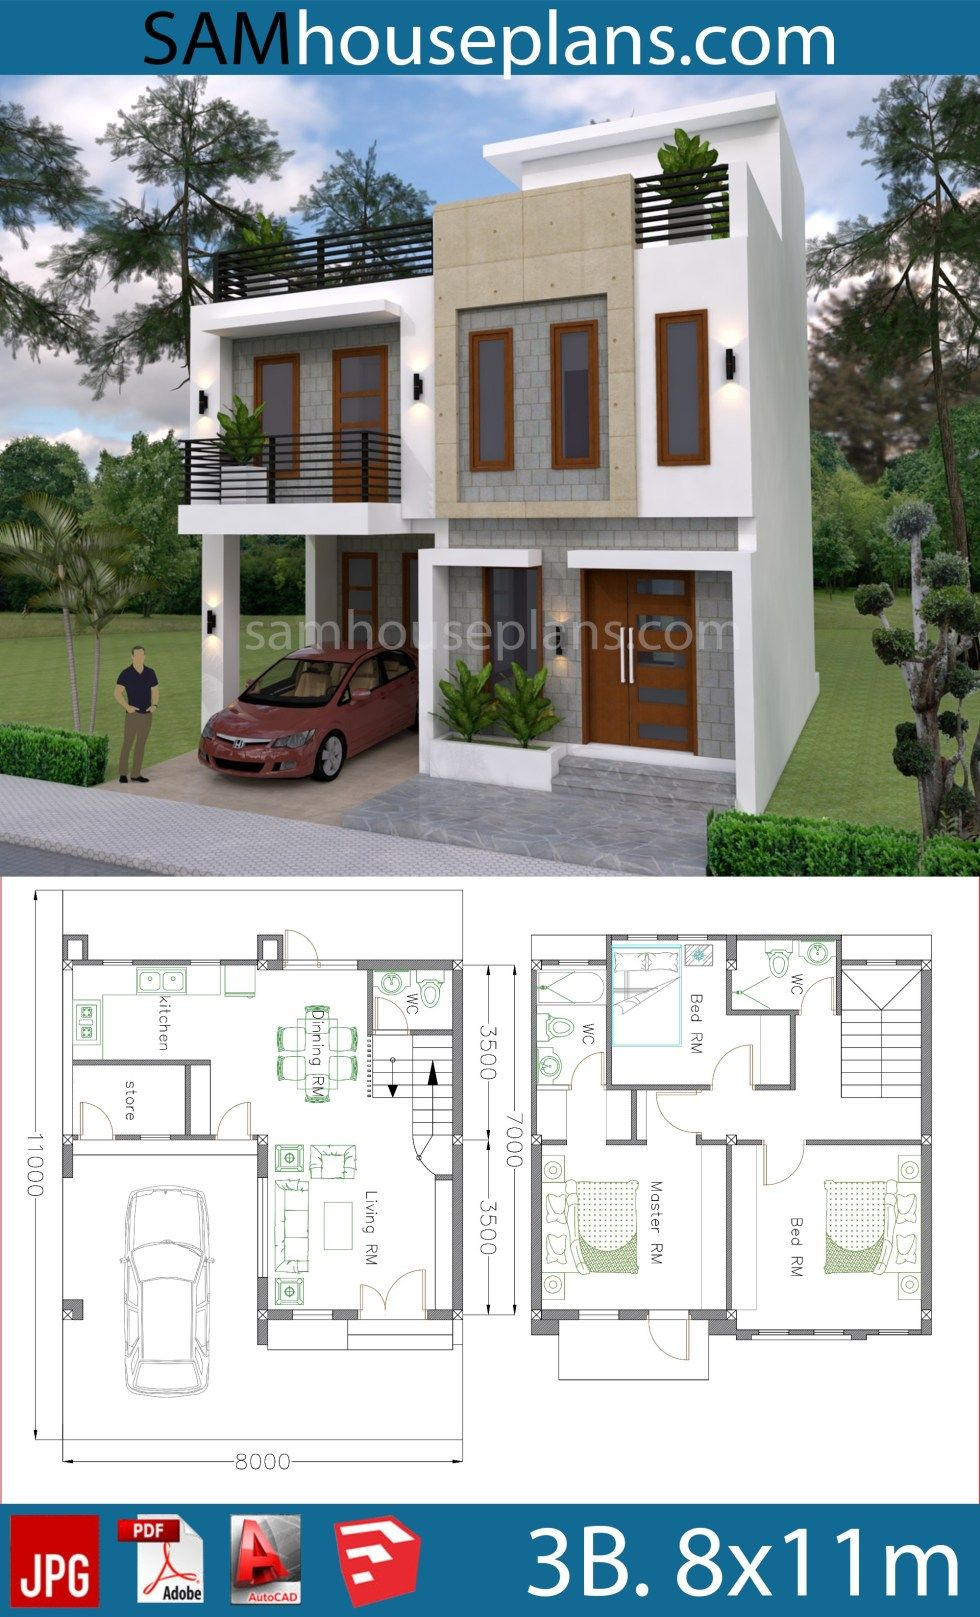 House Plans 8x11m With 3 Bedrooms Sam House Plans Model House Plan House Construction Plan Two Story House Design